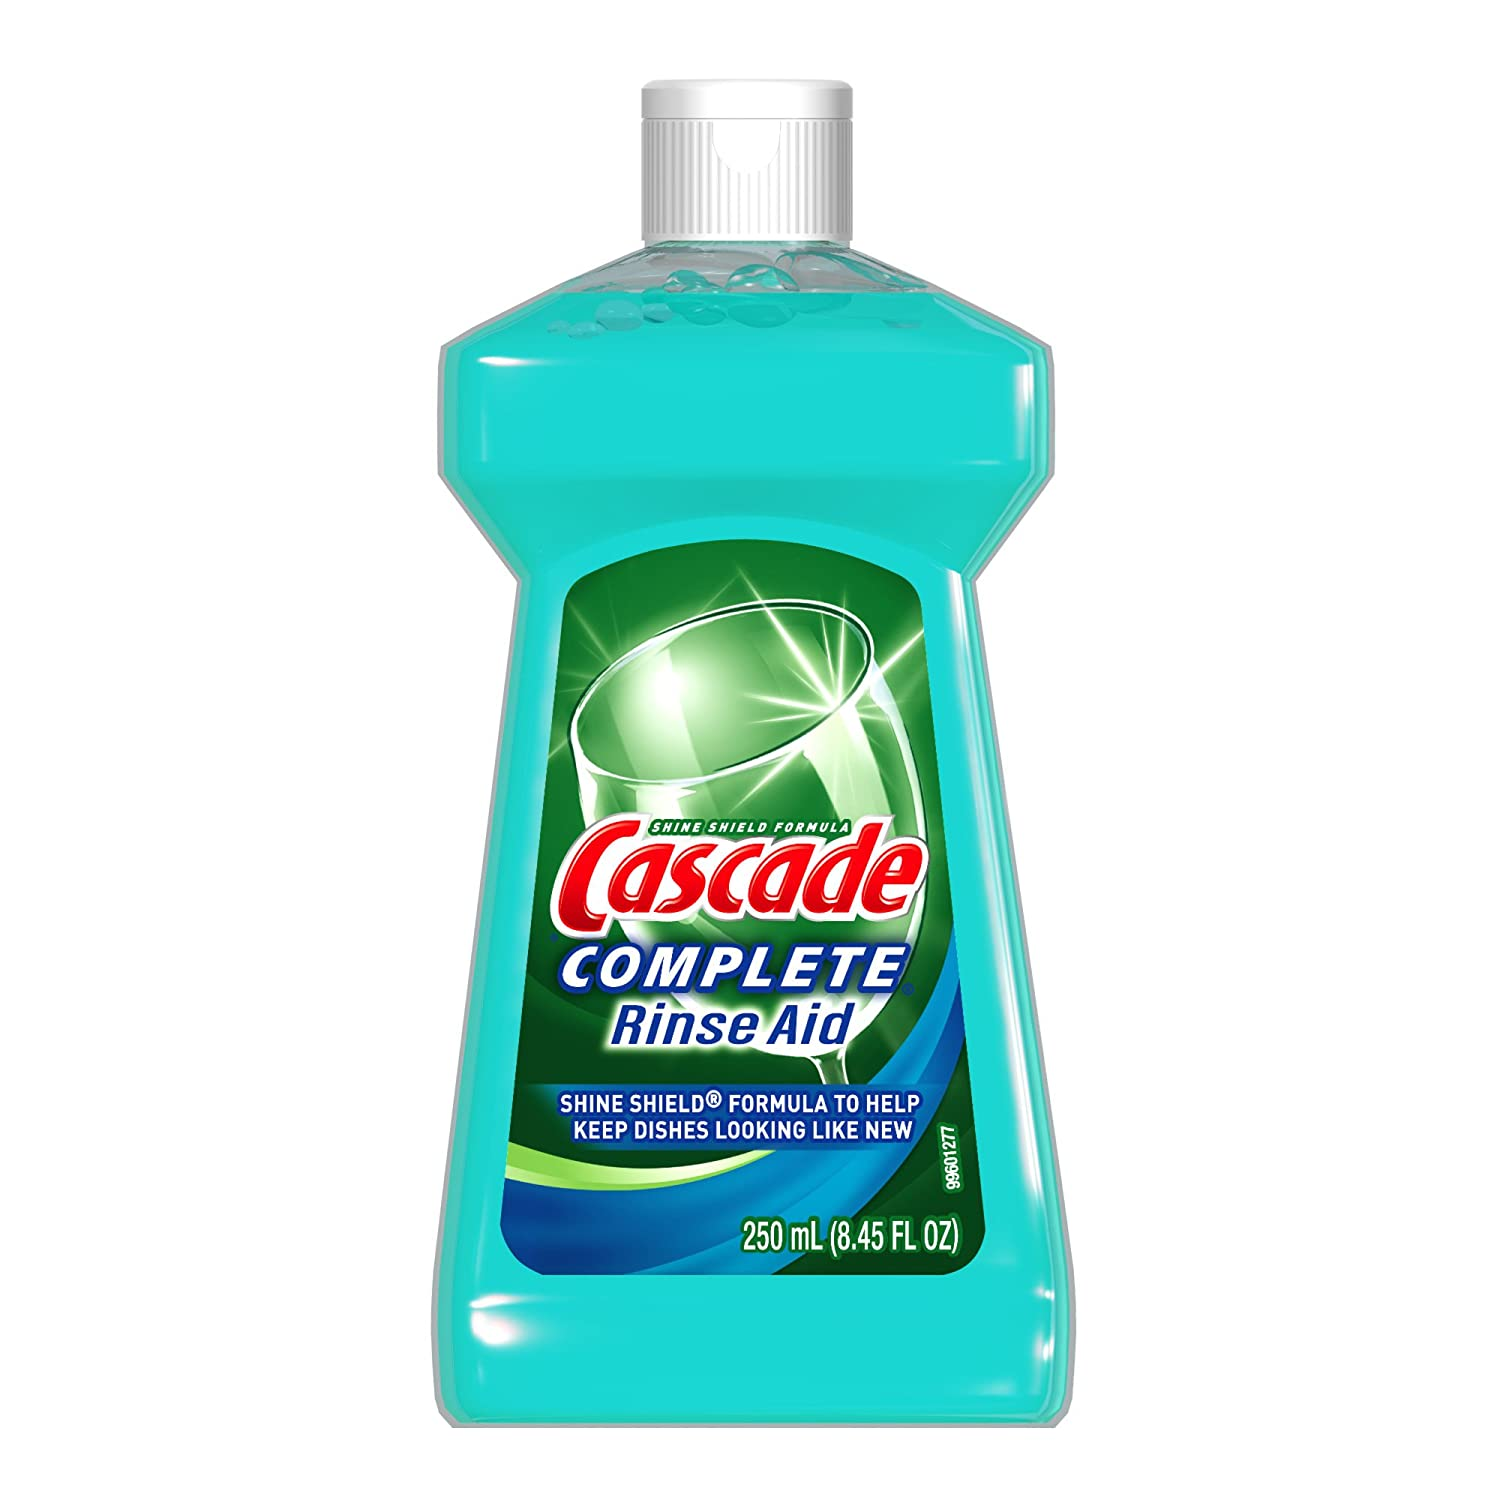 Cascade Complete Rinse Aid, Dishwasher Rinse Agent 8.45 Fl Oz (Pack of 2)